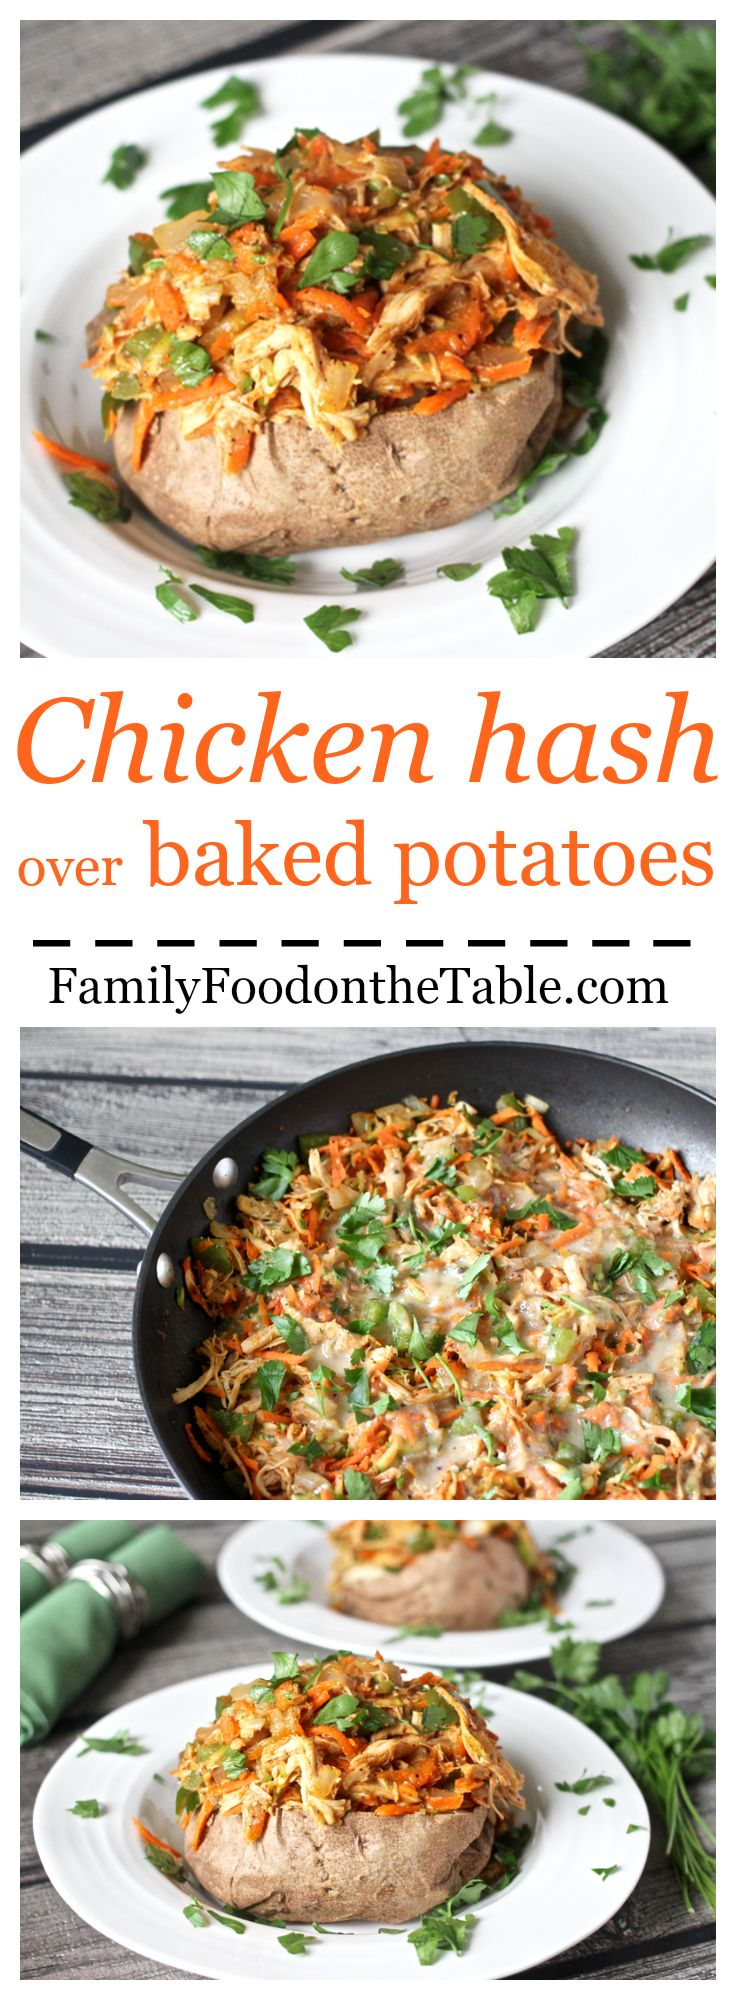 Chicken hash with a super easy gravy over fast baked potatoes - a delicious weeknight meal!